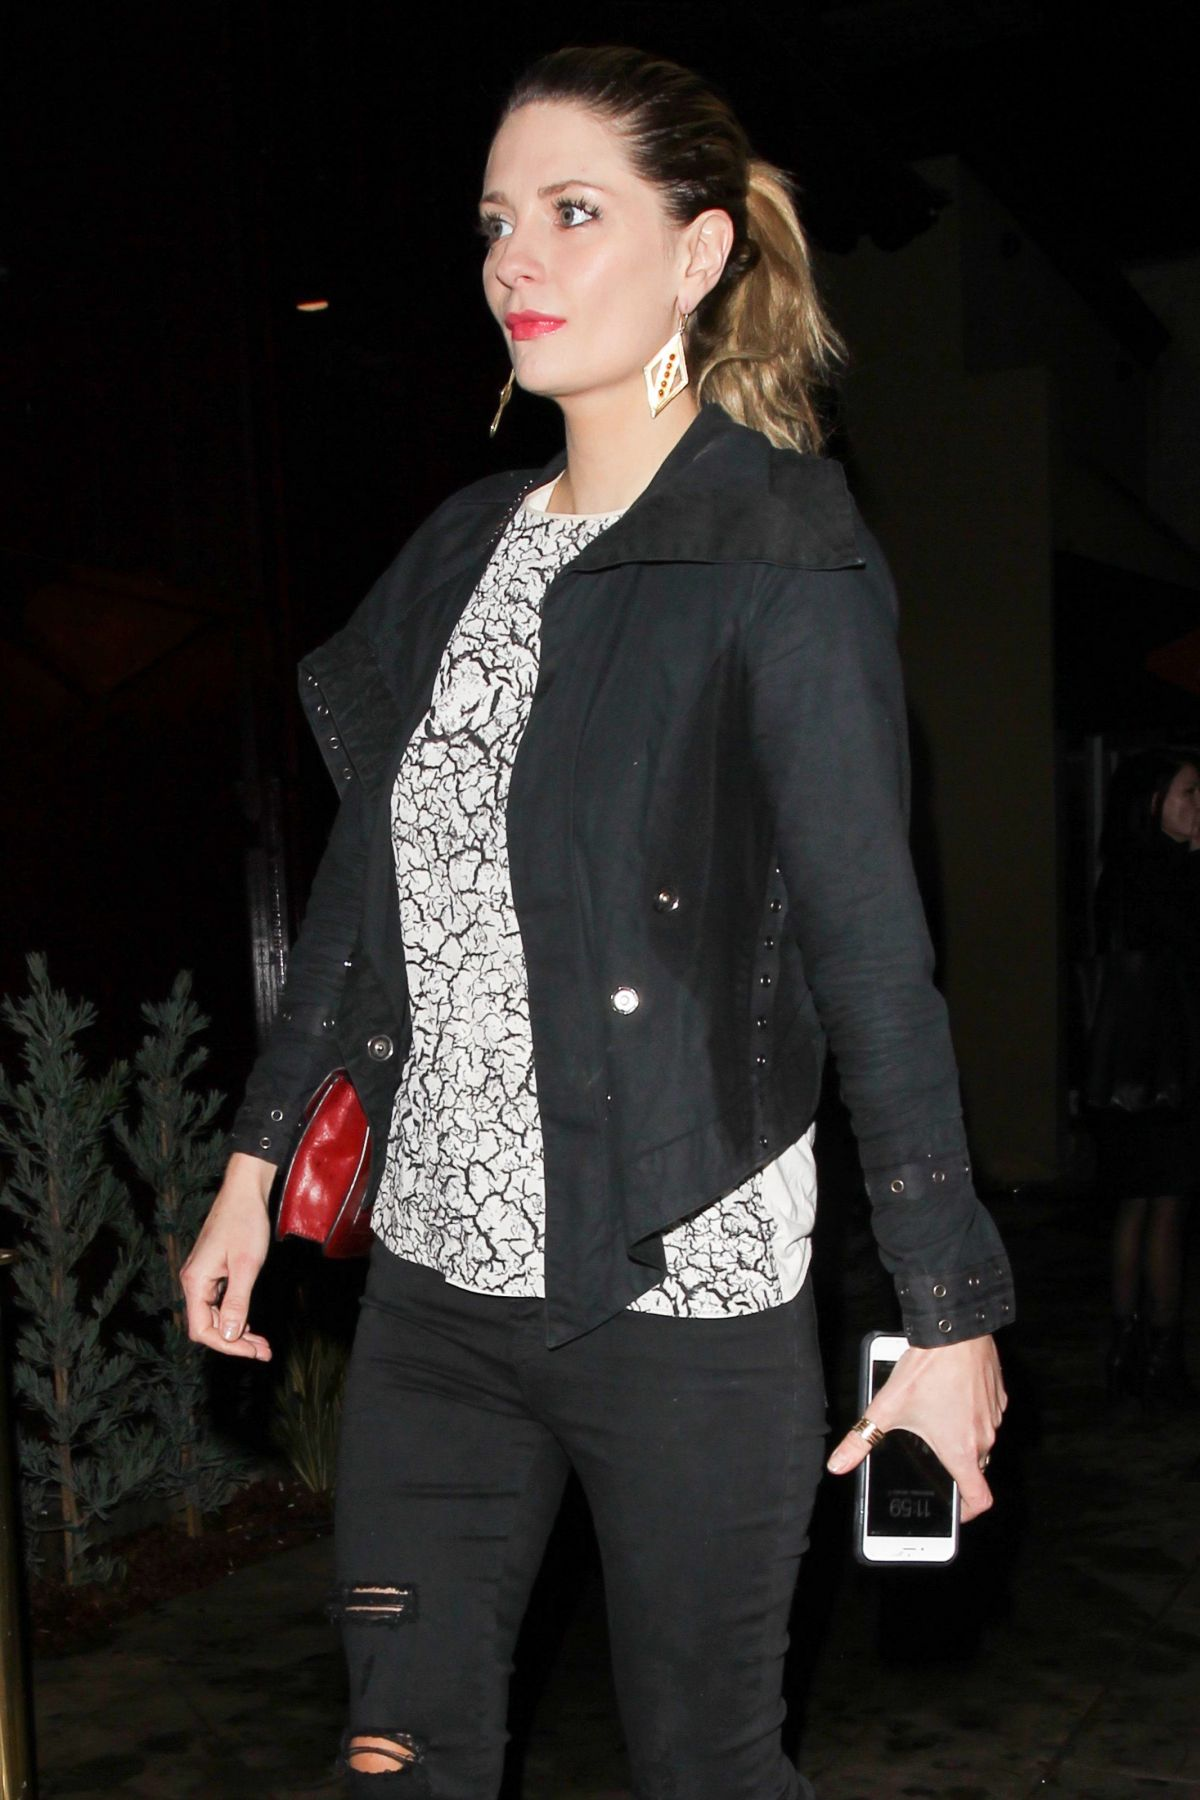 MISCHA BARTON at Peppermint Club in West Hollywod 01/11 ...